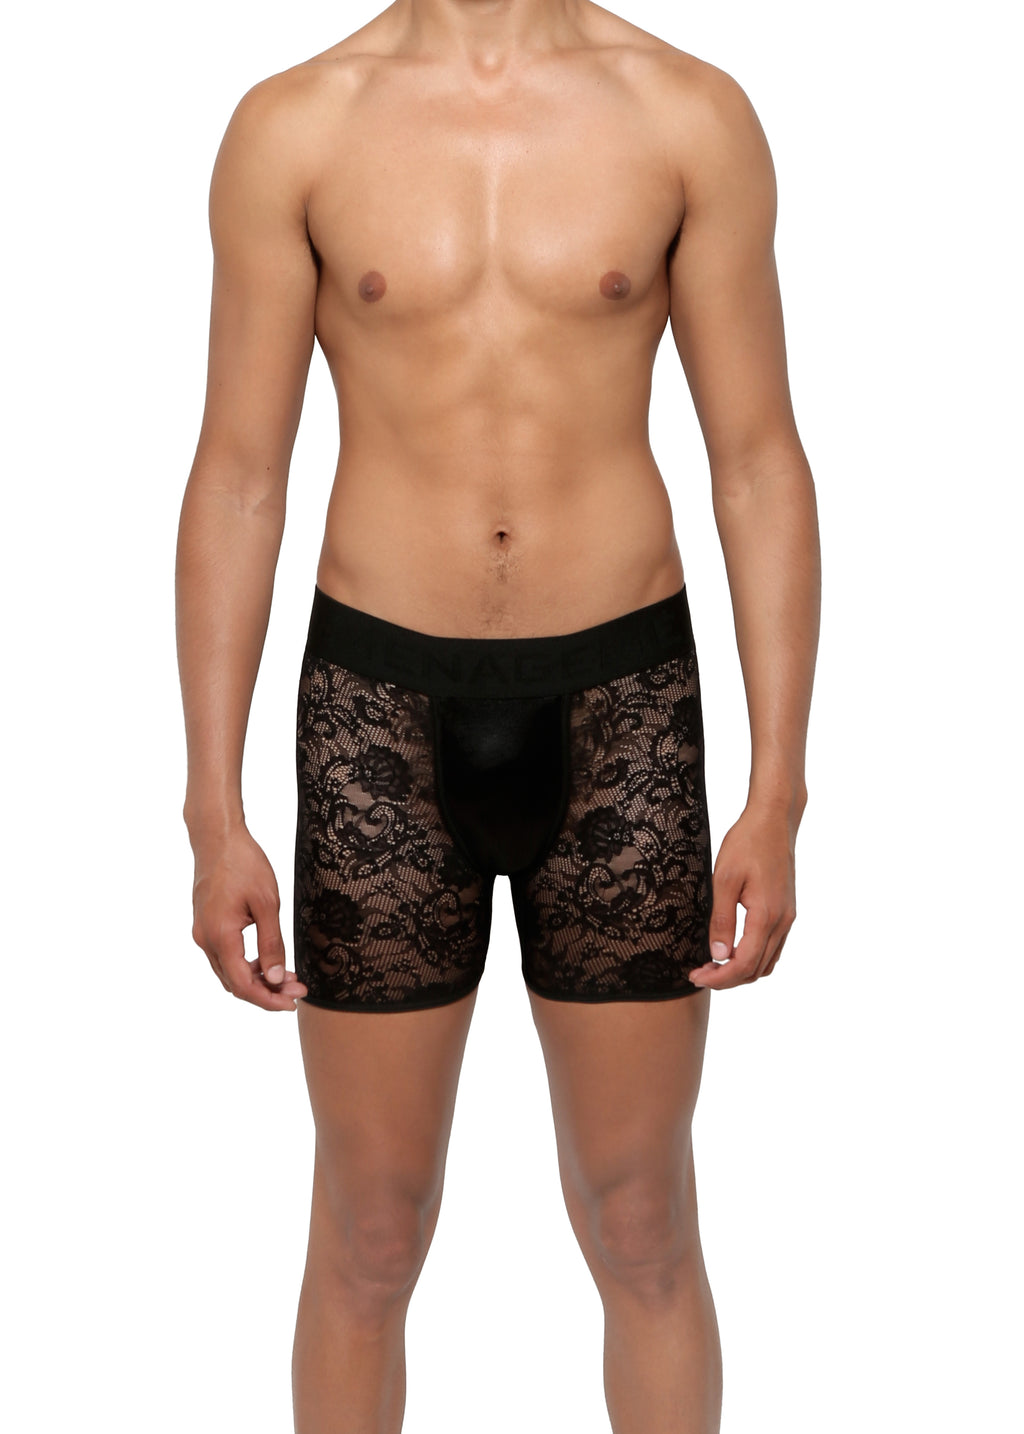 BOXER BRIEF in LACE SPANDEX - MENAGERIE Intimates MENS Lingerie